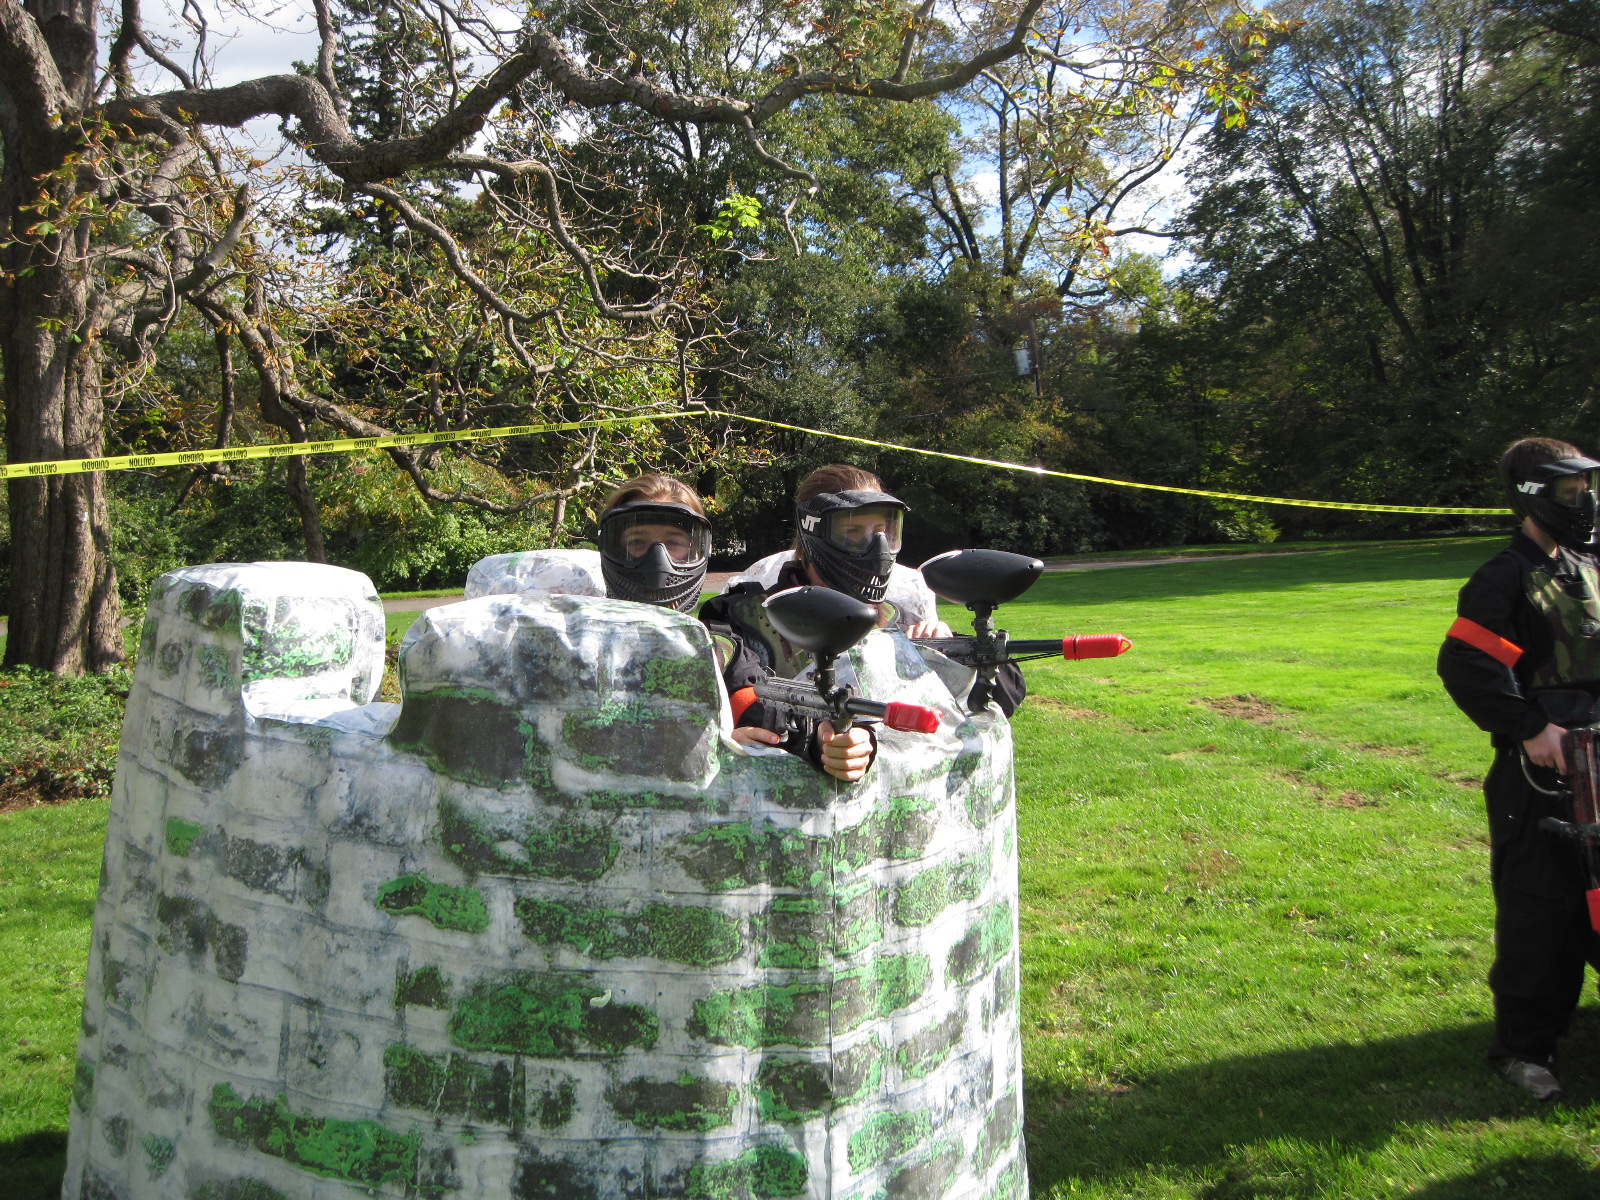 Island Paintball Offers MOBILE LASER TAG And MOBILE PAINTBALL For Your Next  Event   We Bring The Game To You! Servicing Corporate And Private Clients  In The ...